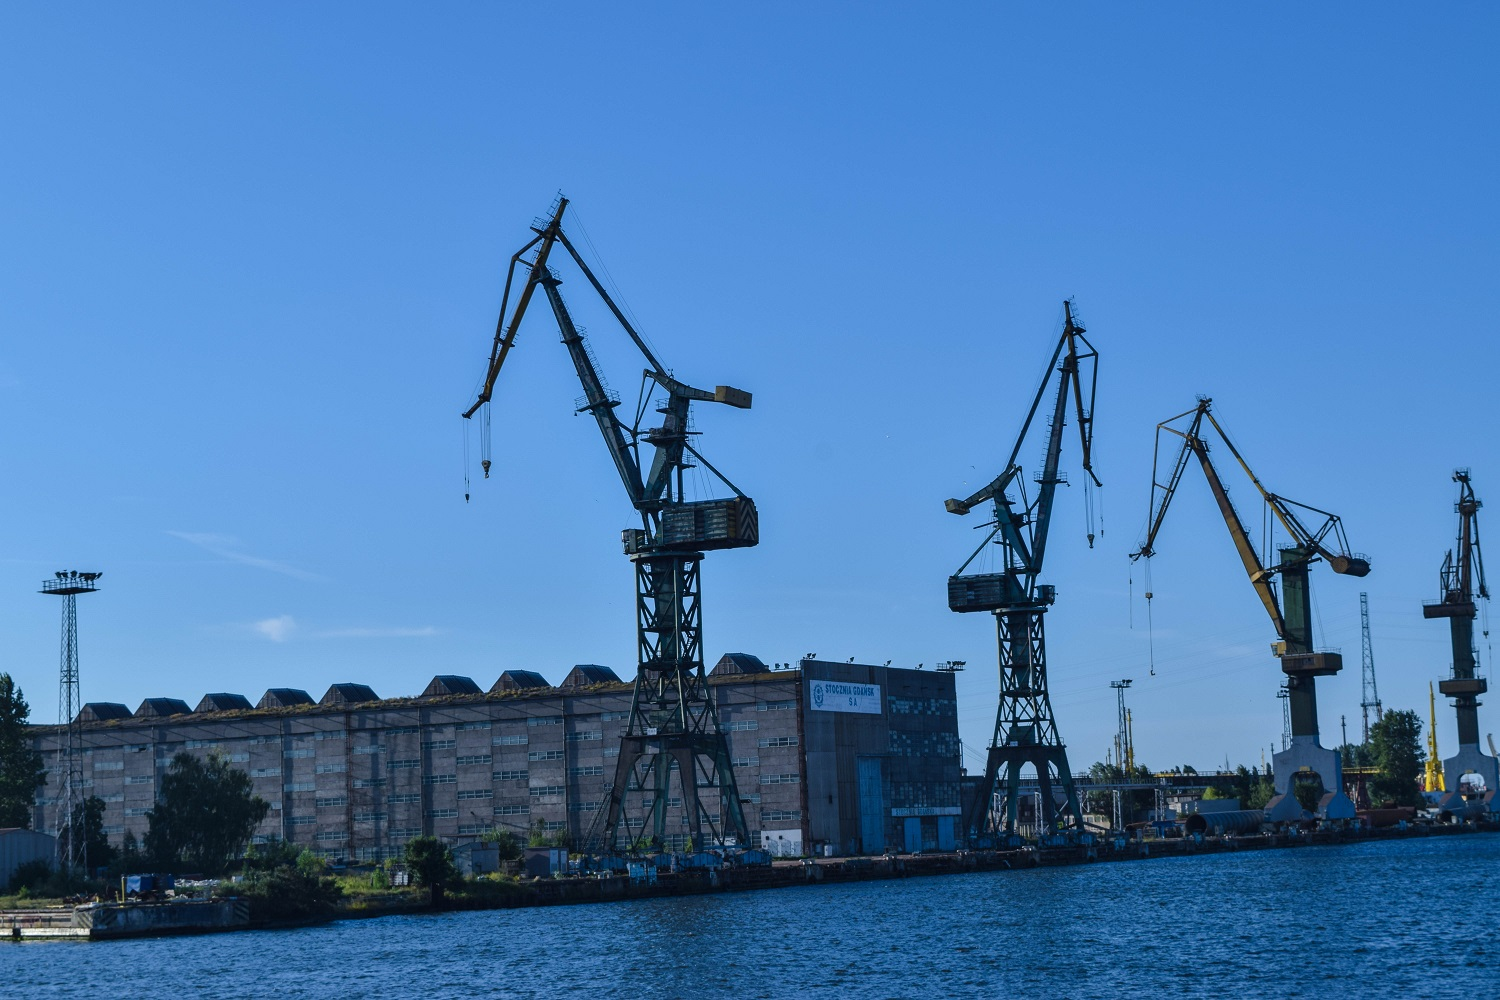 Shipyards from the Canal